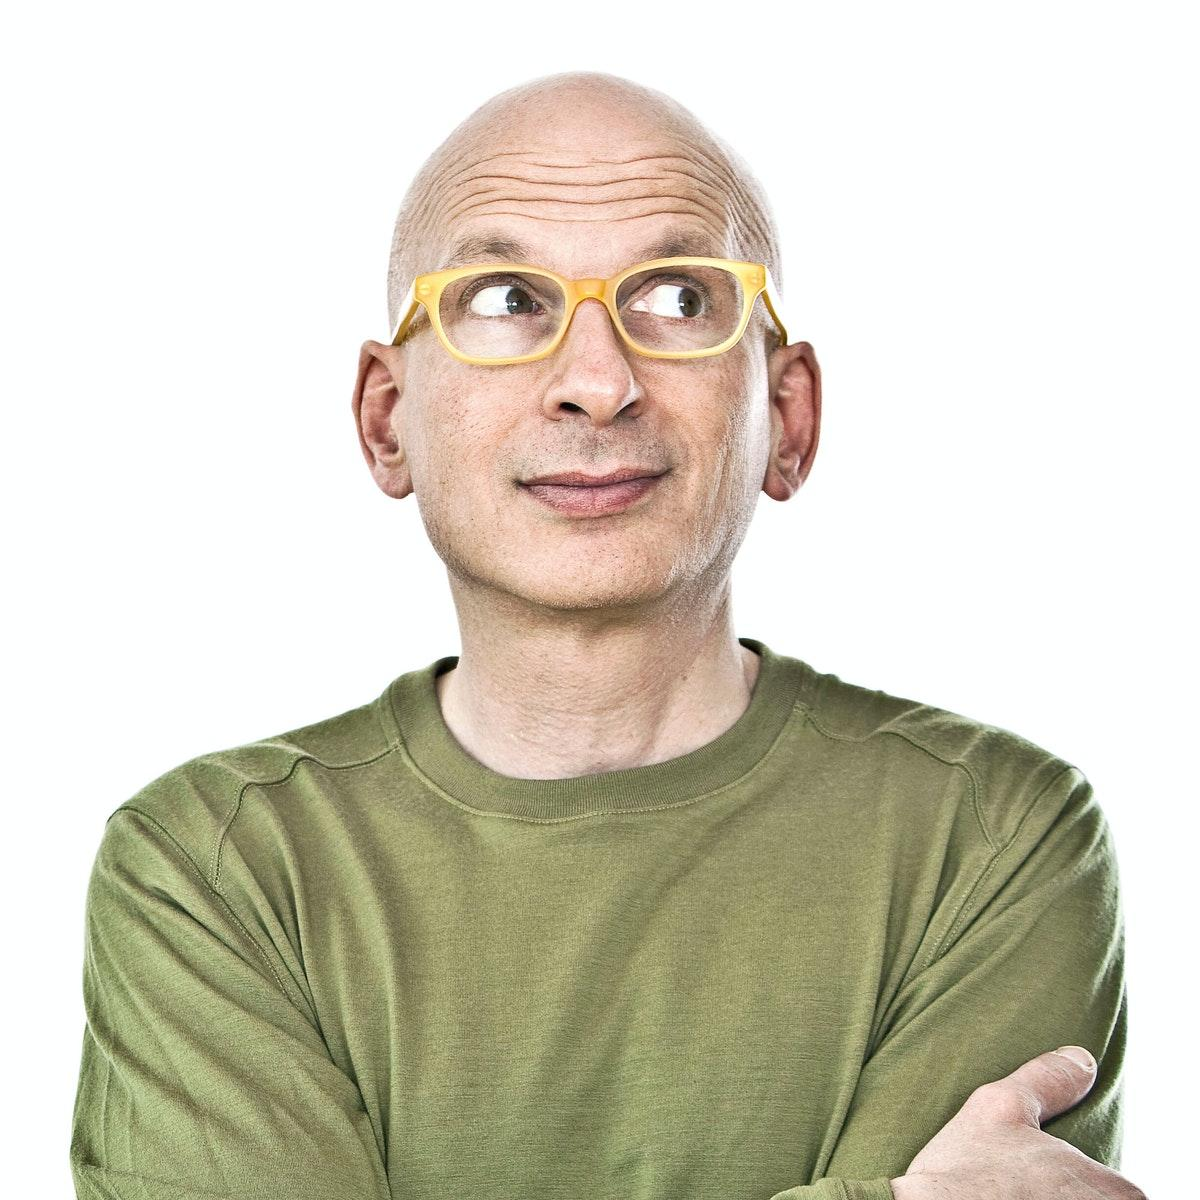 Seth Godin on The Great Discontent (TGD)